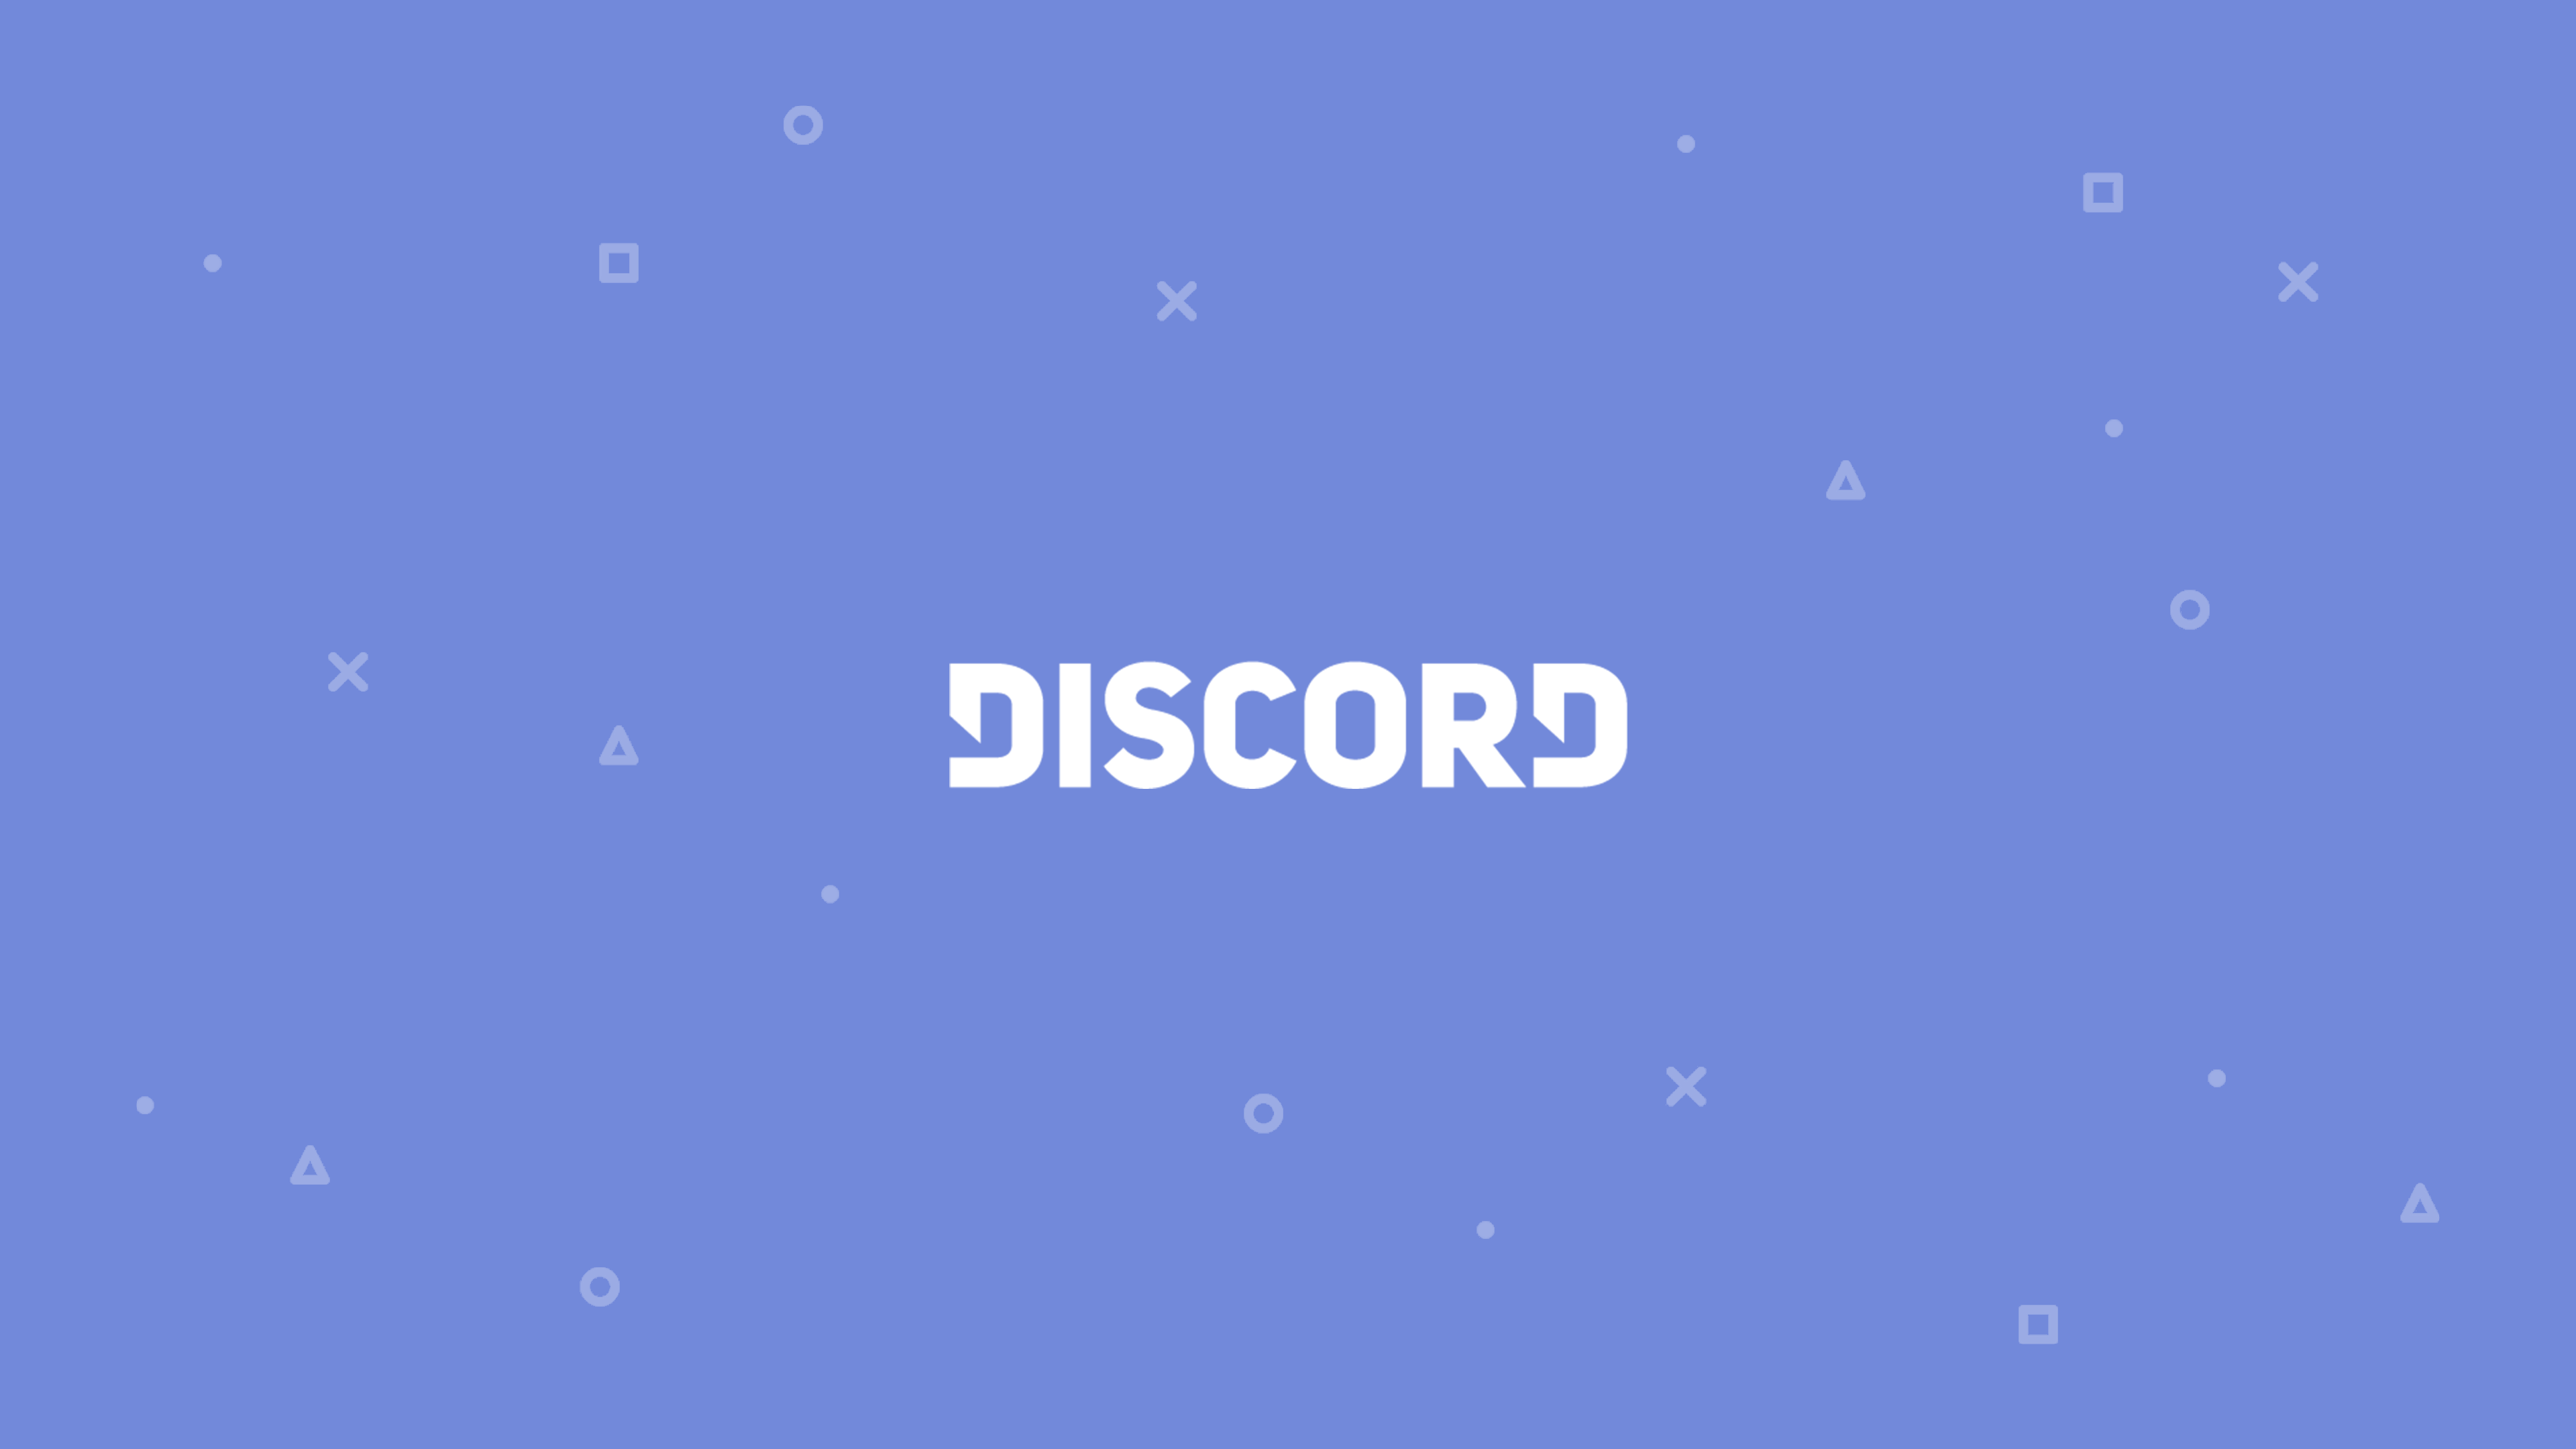 How can you create and deploy your own Discord Bot using